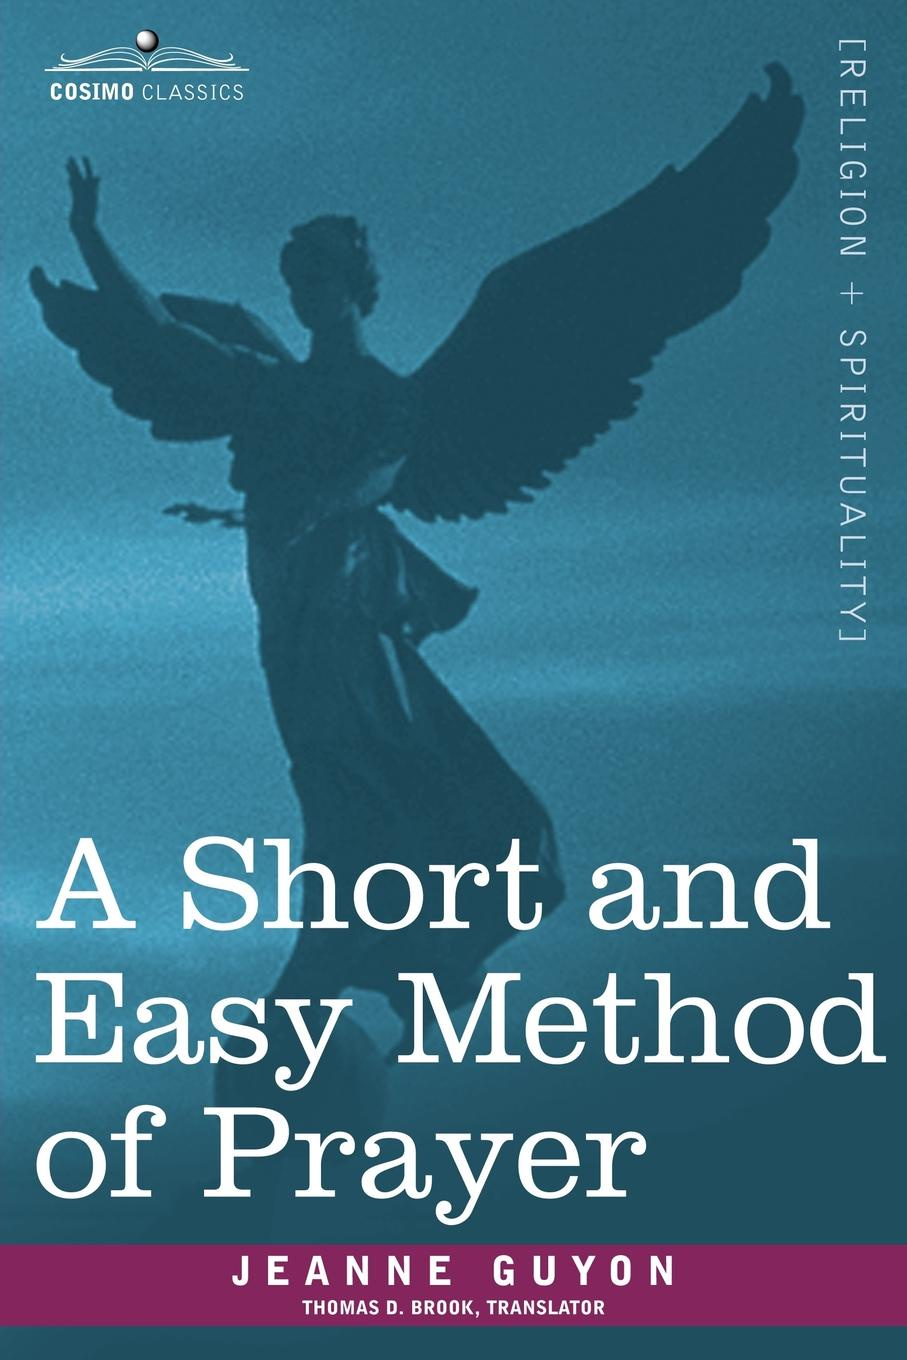 Jeanne Guyon, Thomas D. Brook A Short and Easy Method of Prayer jeanne marie bouvières de la motte guyon a short method of prayer and spiritual torrents tr by a w marston